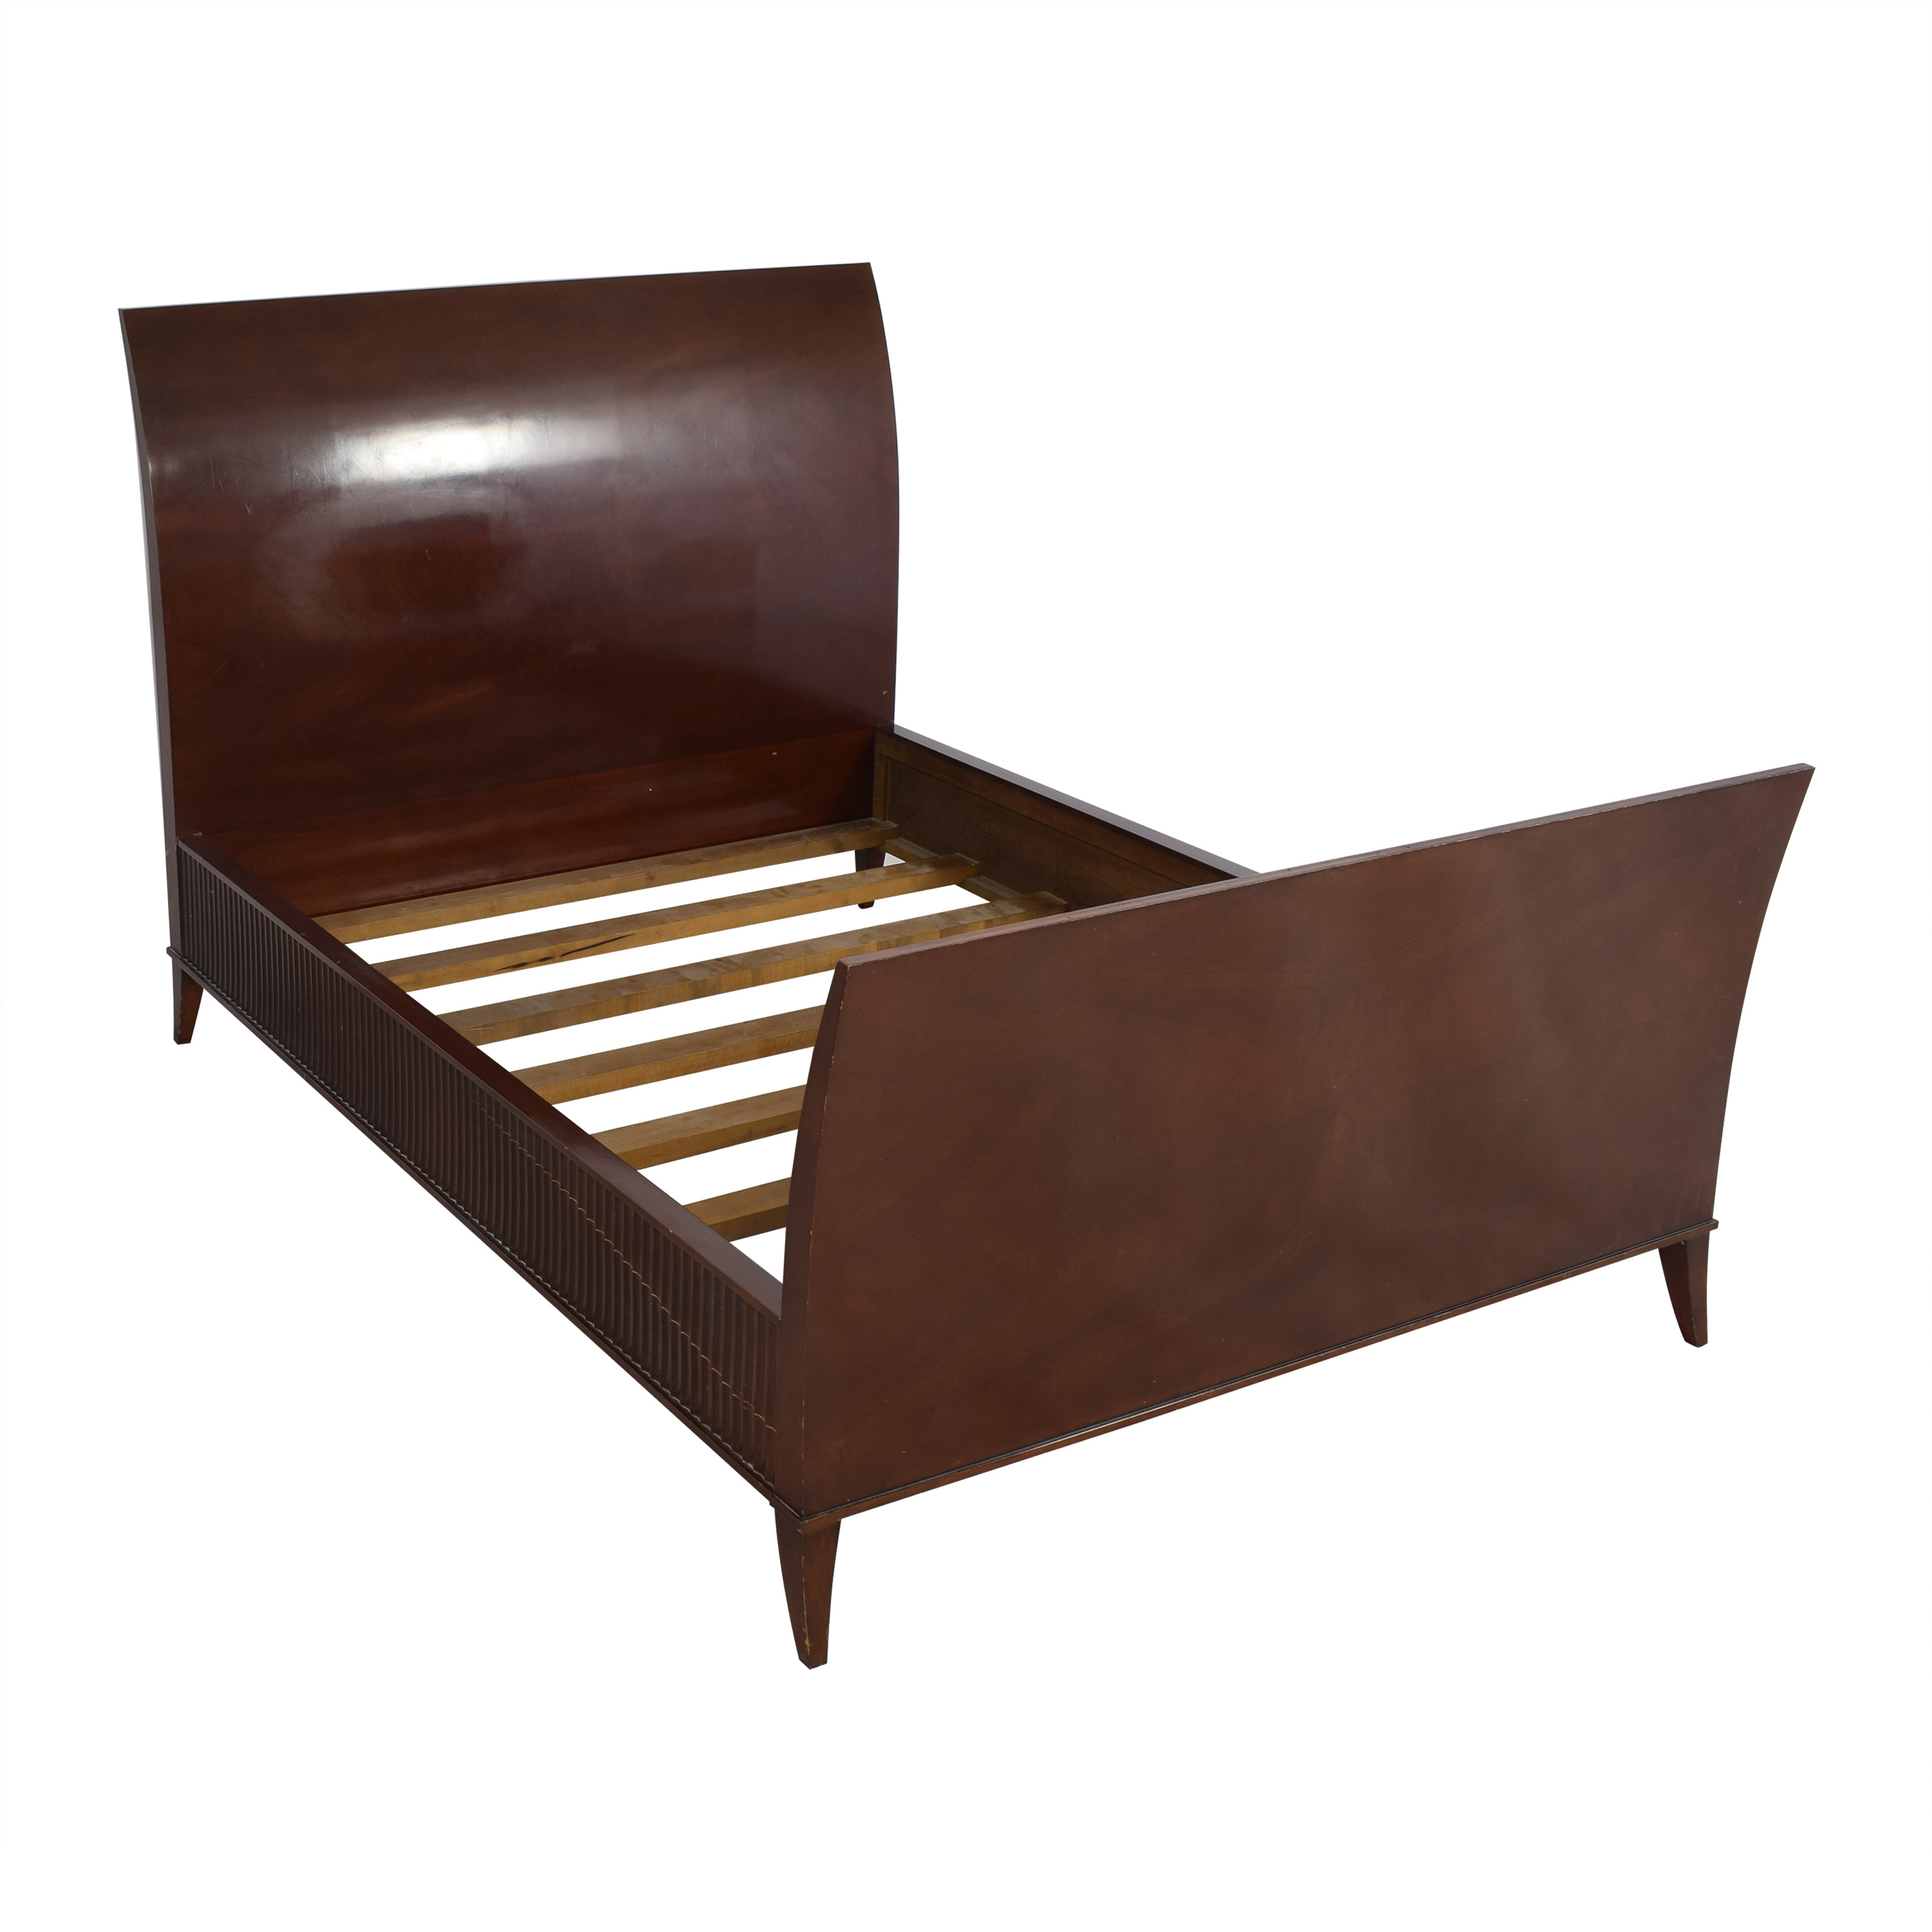 Decca Bolier for Decca Rosenau Collection Queen Sleigh Bed dimensions